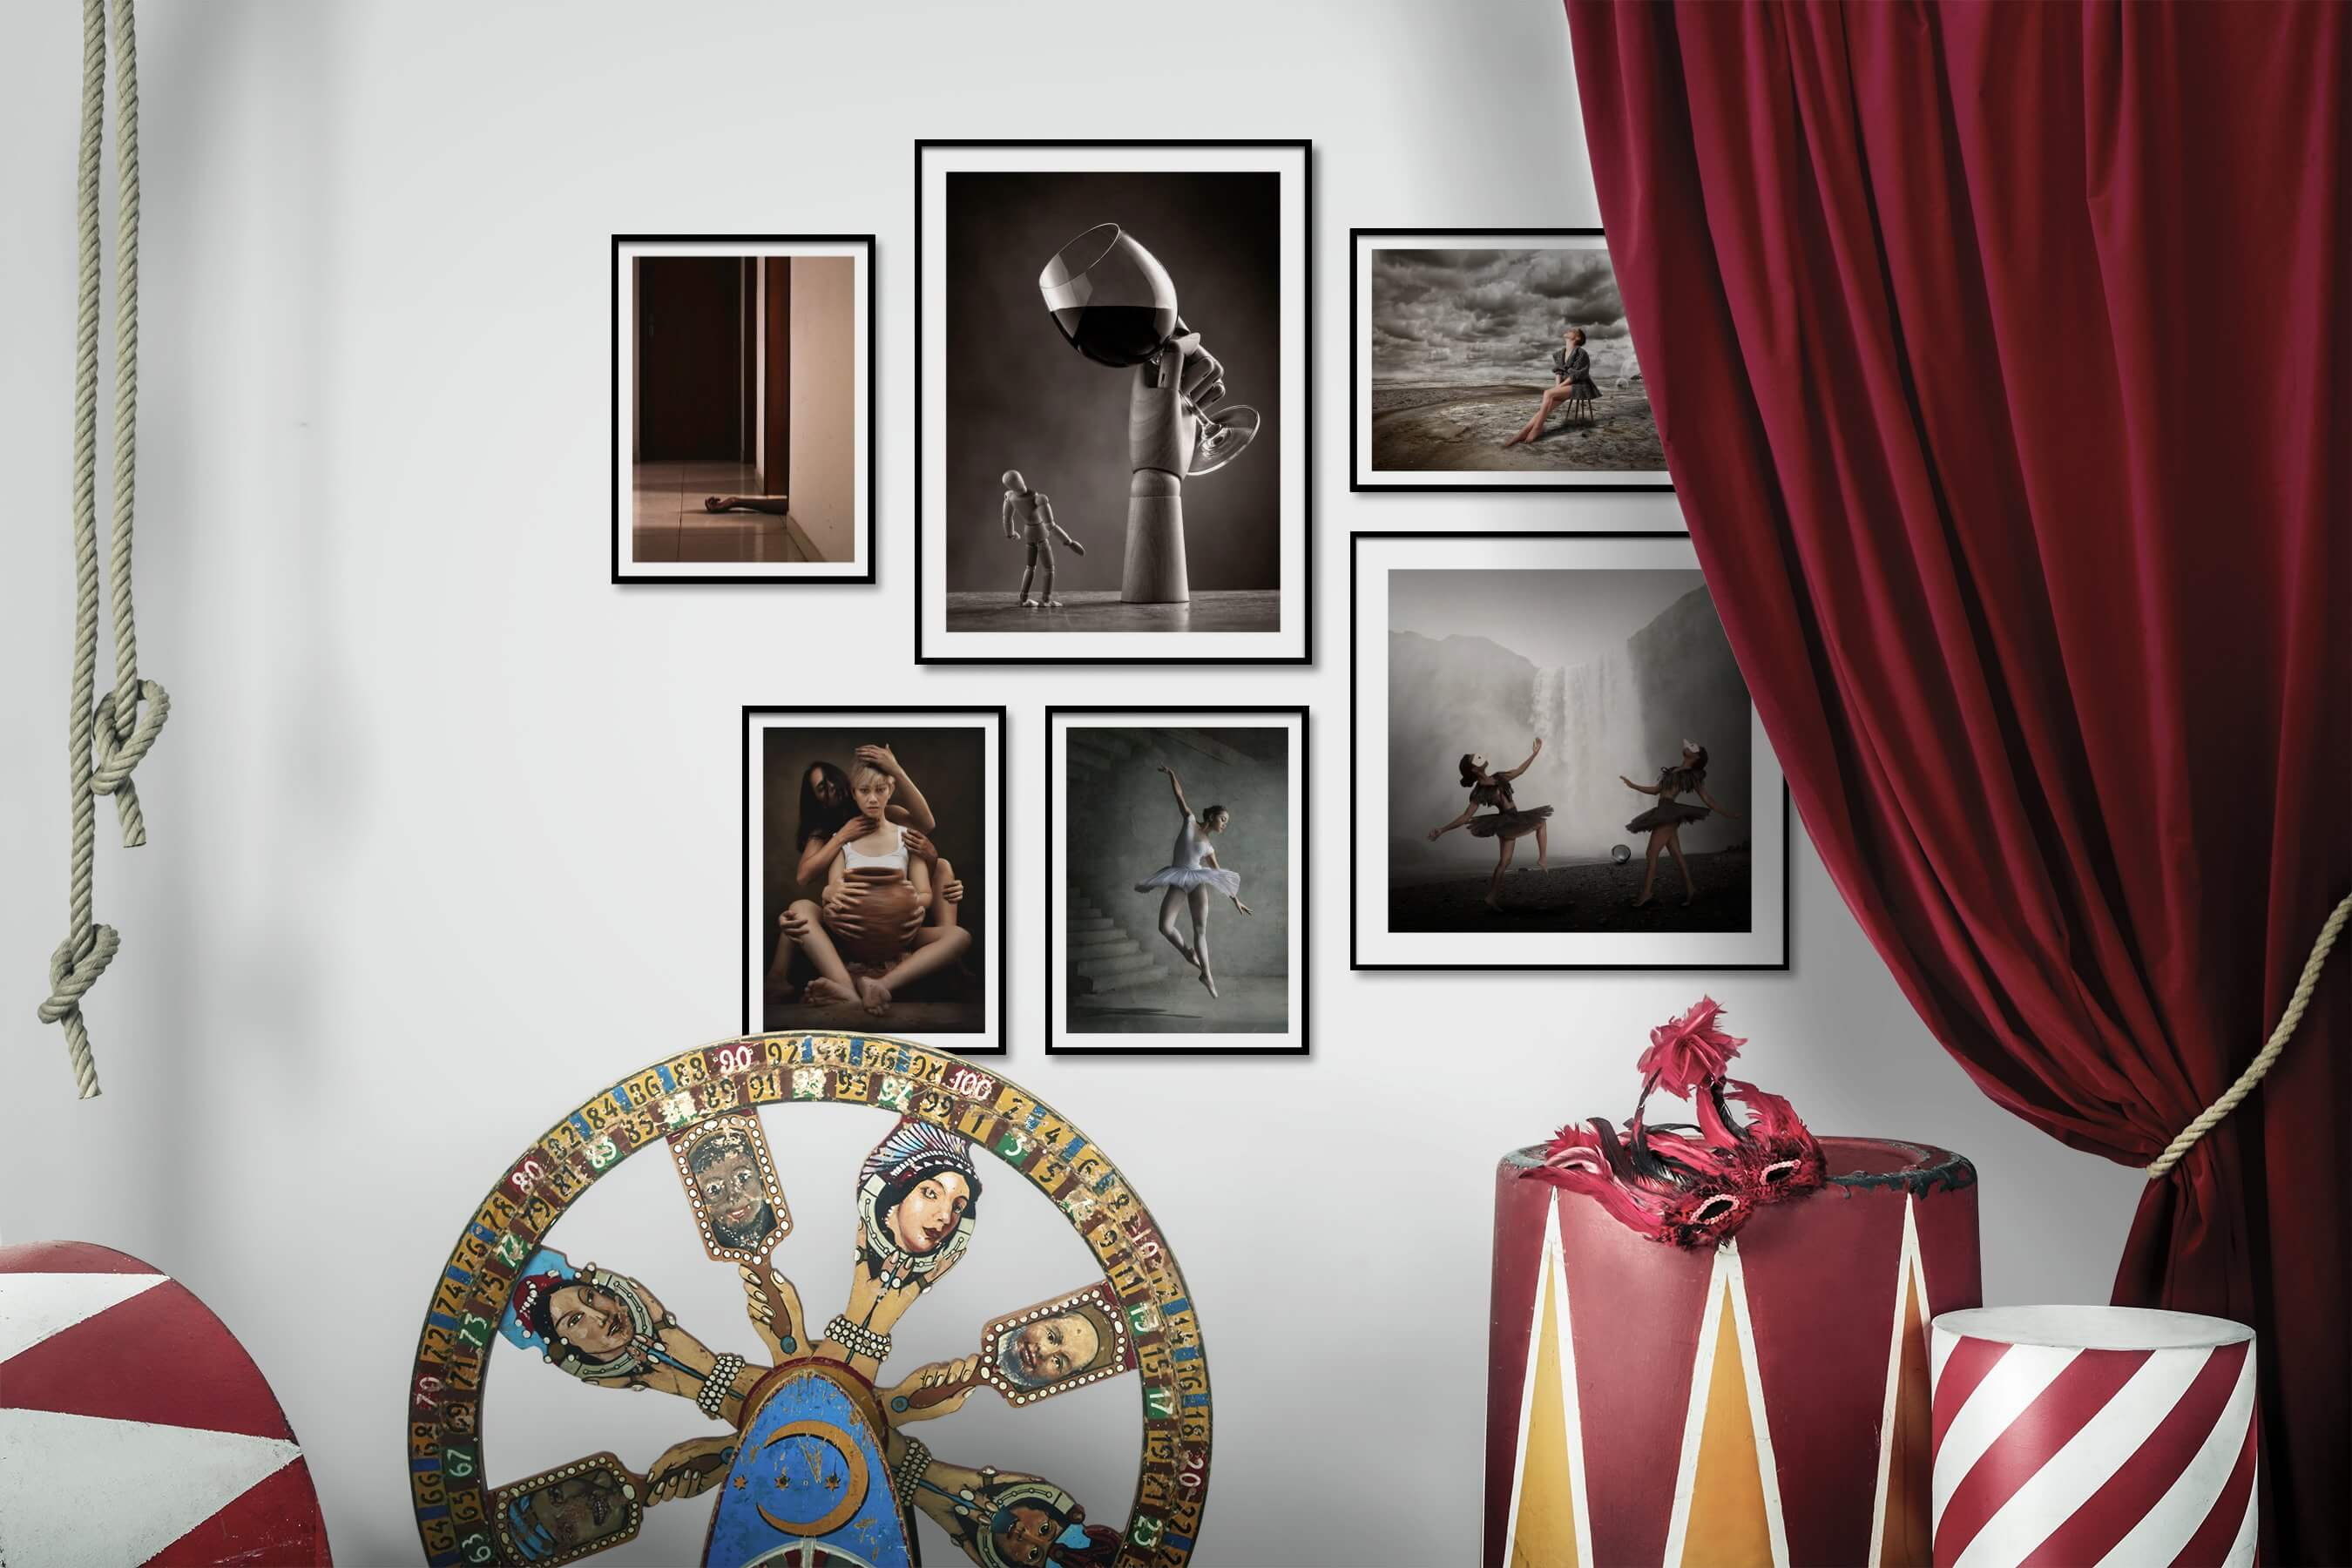 Gallery wall idea with six framed pictures arranged on a wall depicting Artsy, For the Moderate, Fashion & Beauty, and Nature